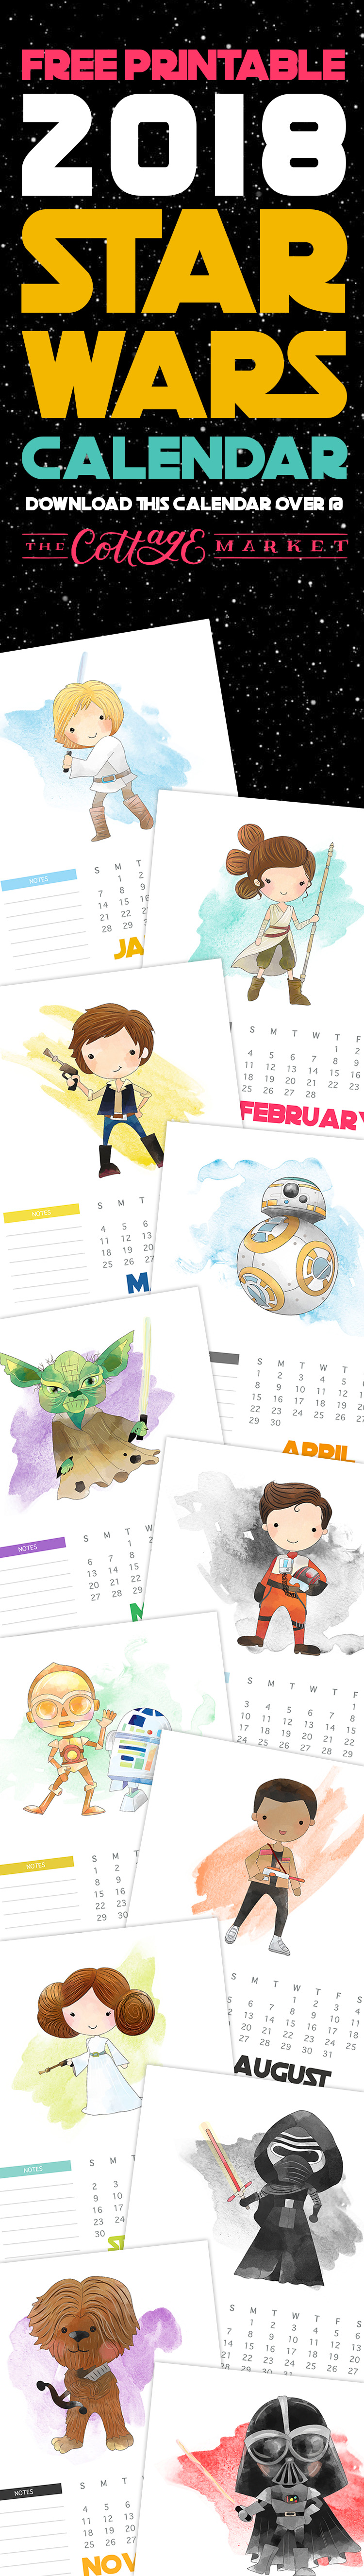 Check out the pages for this free printable 2018 Star Wars calendar